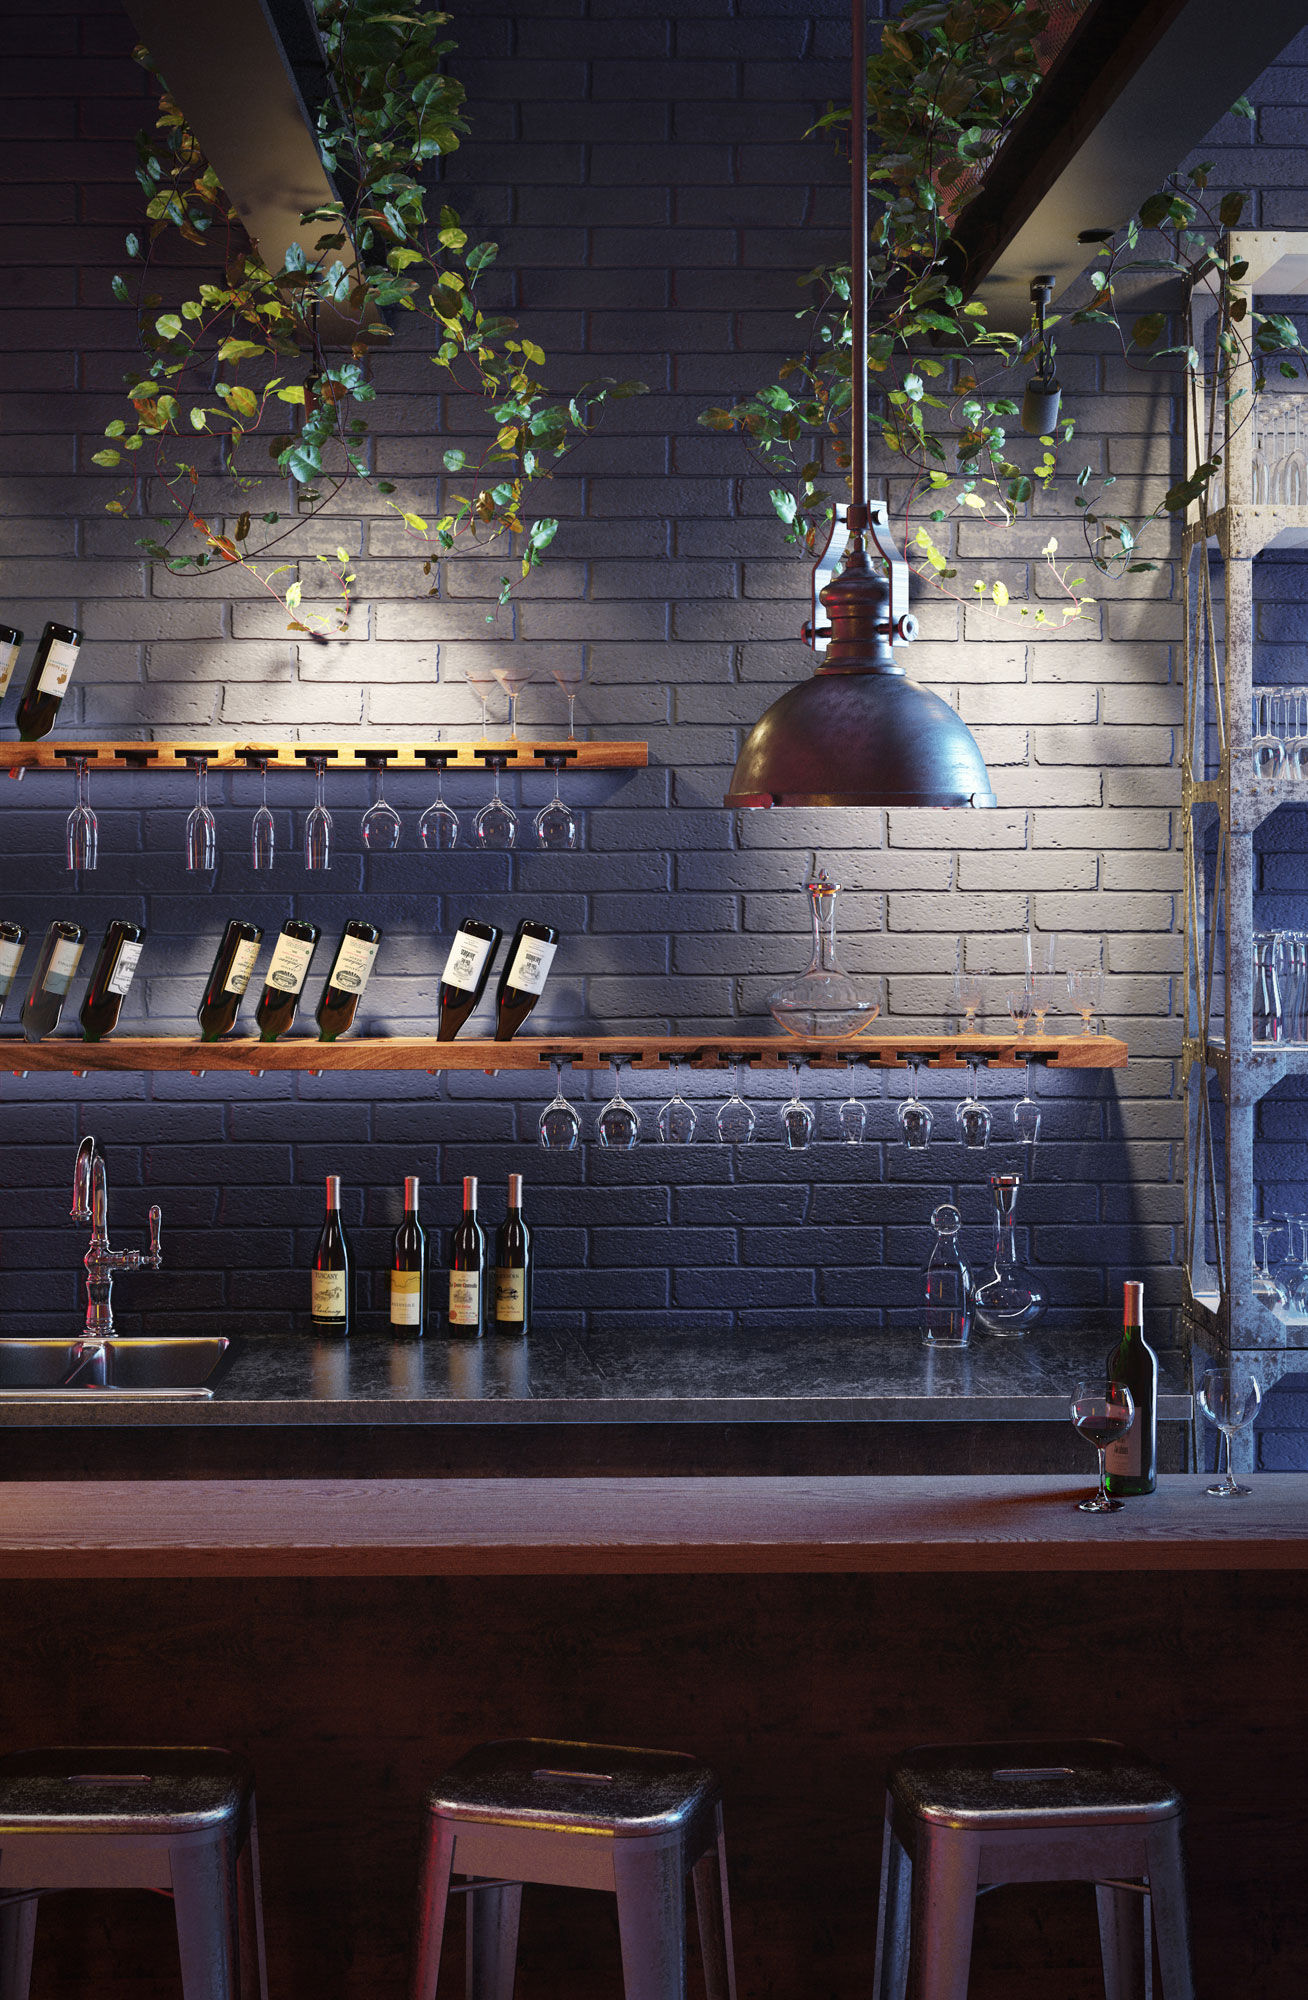 Product visualization: wine racks in the bar